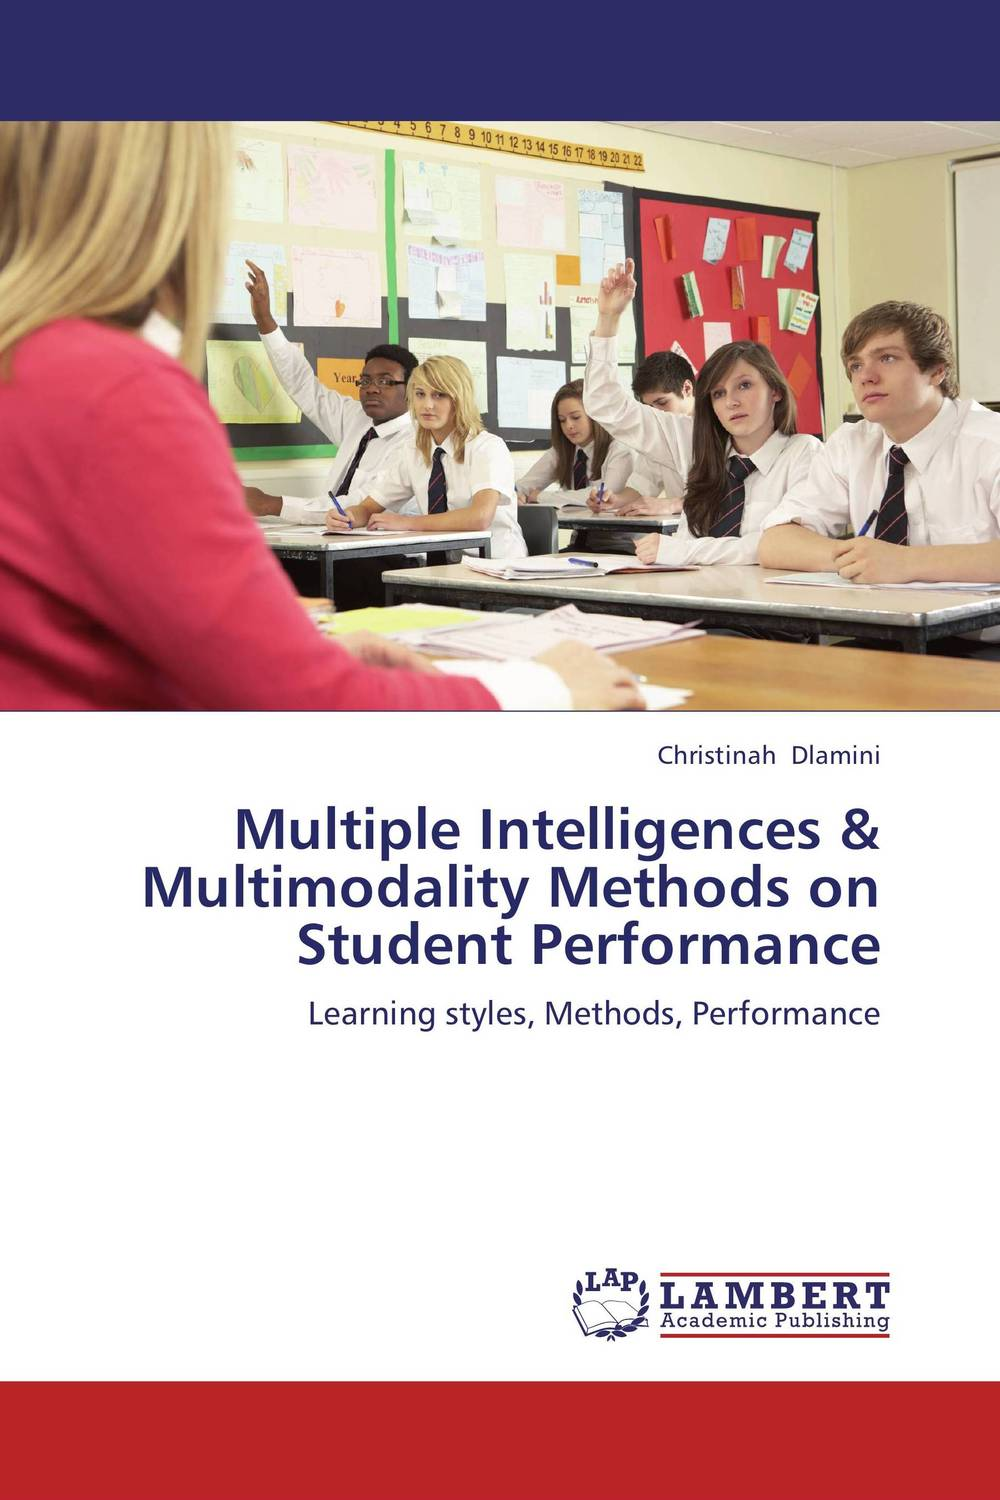 Multiple Intelligences & Multimodality Methods on Student Performance belousov a security features of banknotes and other documents methods of authentication manual денежные билеты бланки ценных бумаг и документов